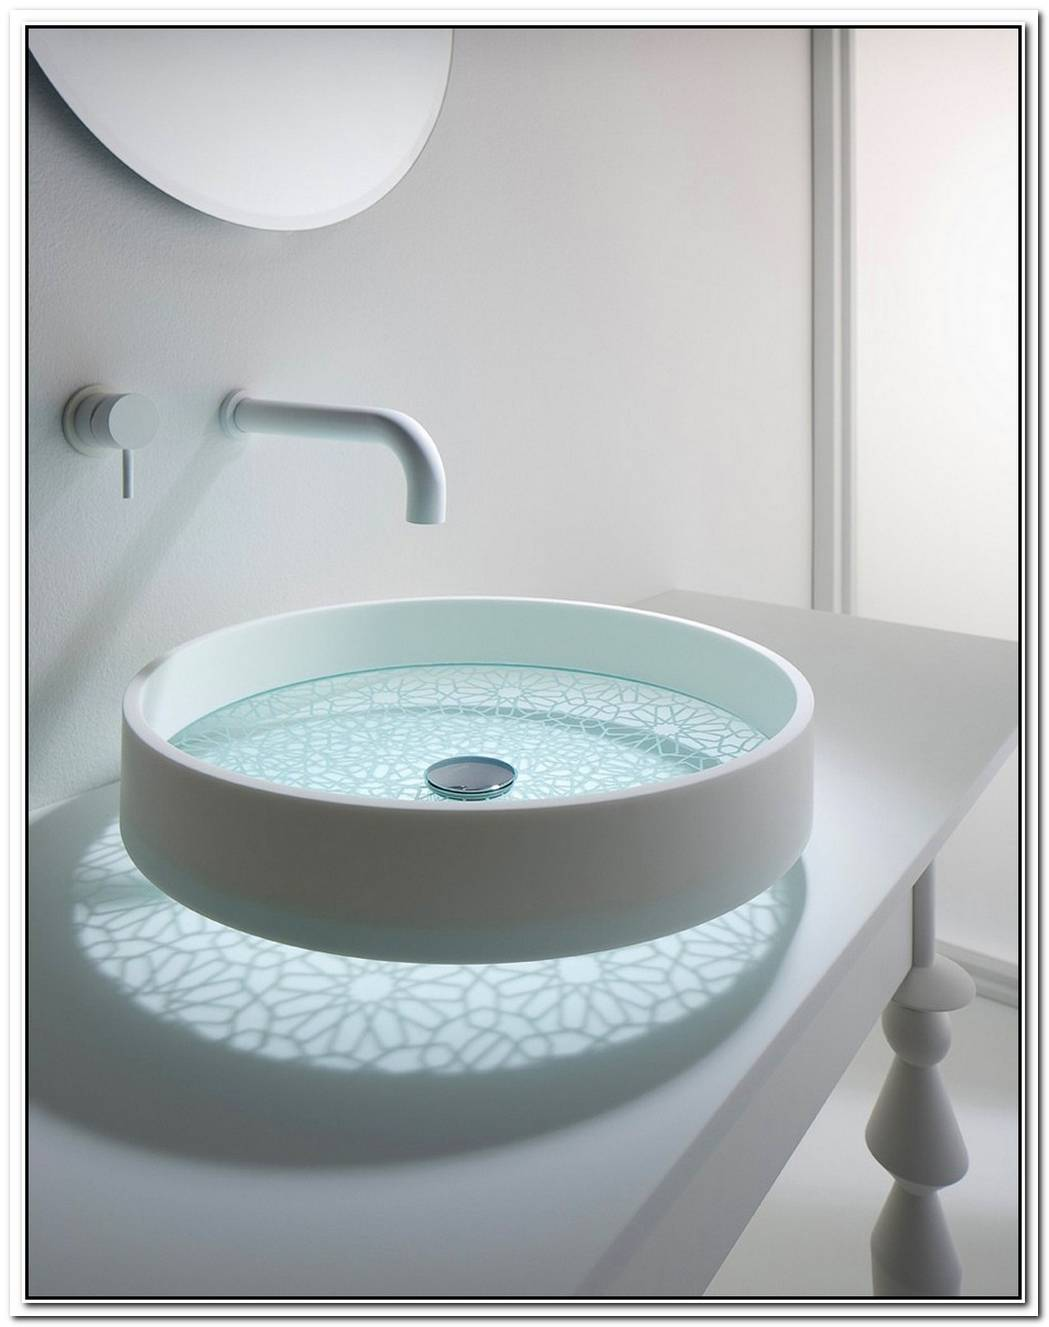 Modern Bathroom Sinks By Philip Watts Design